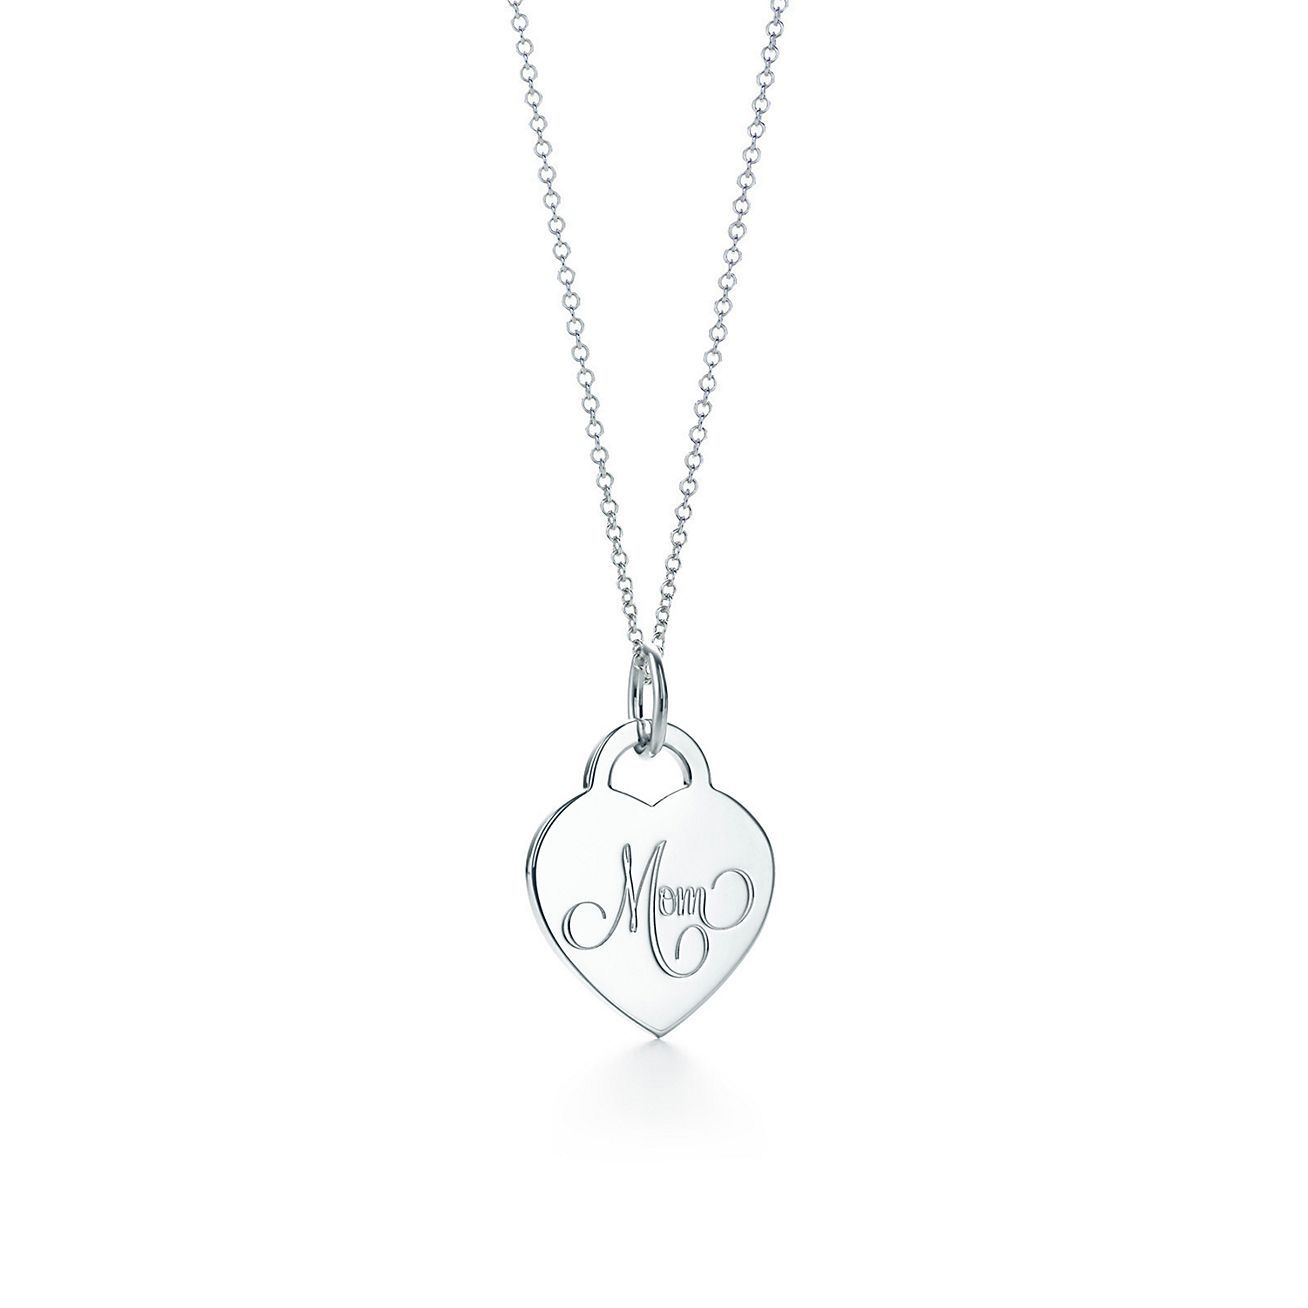 Tiffany Amp Co Silver Heart Necklace Cost Of Tiffany